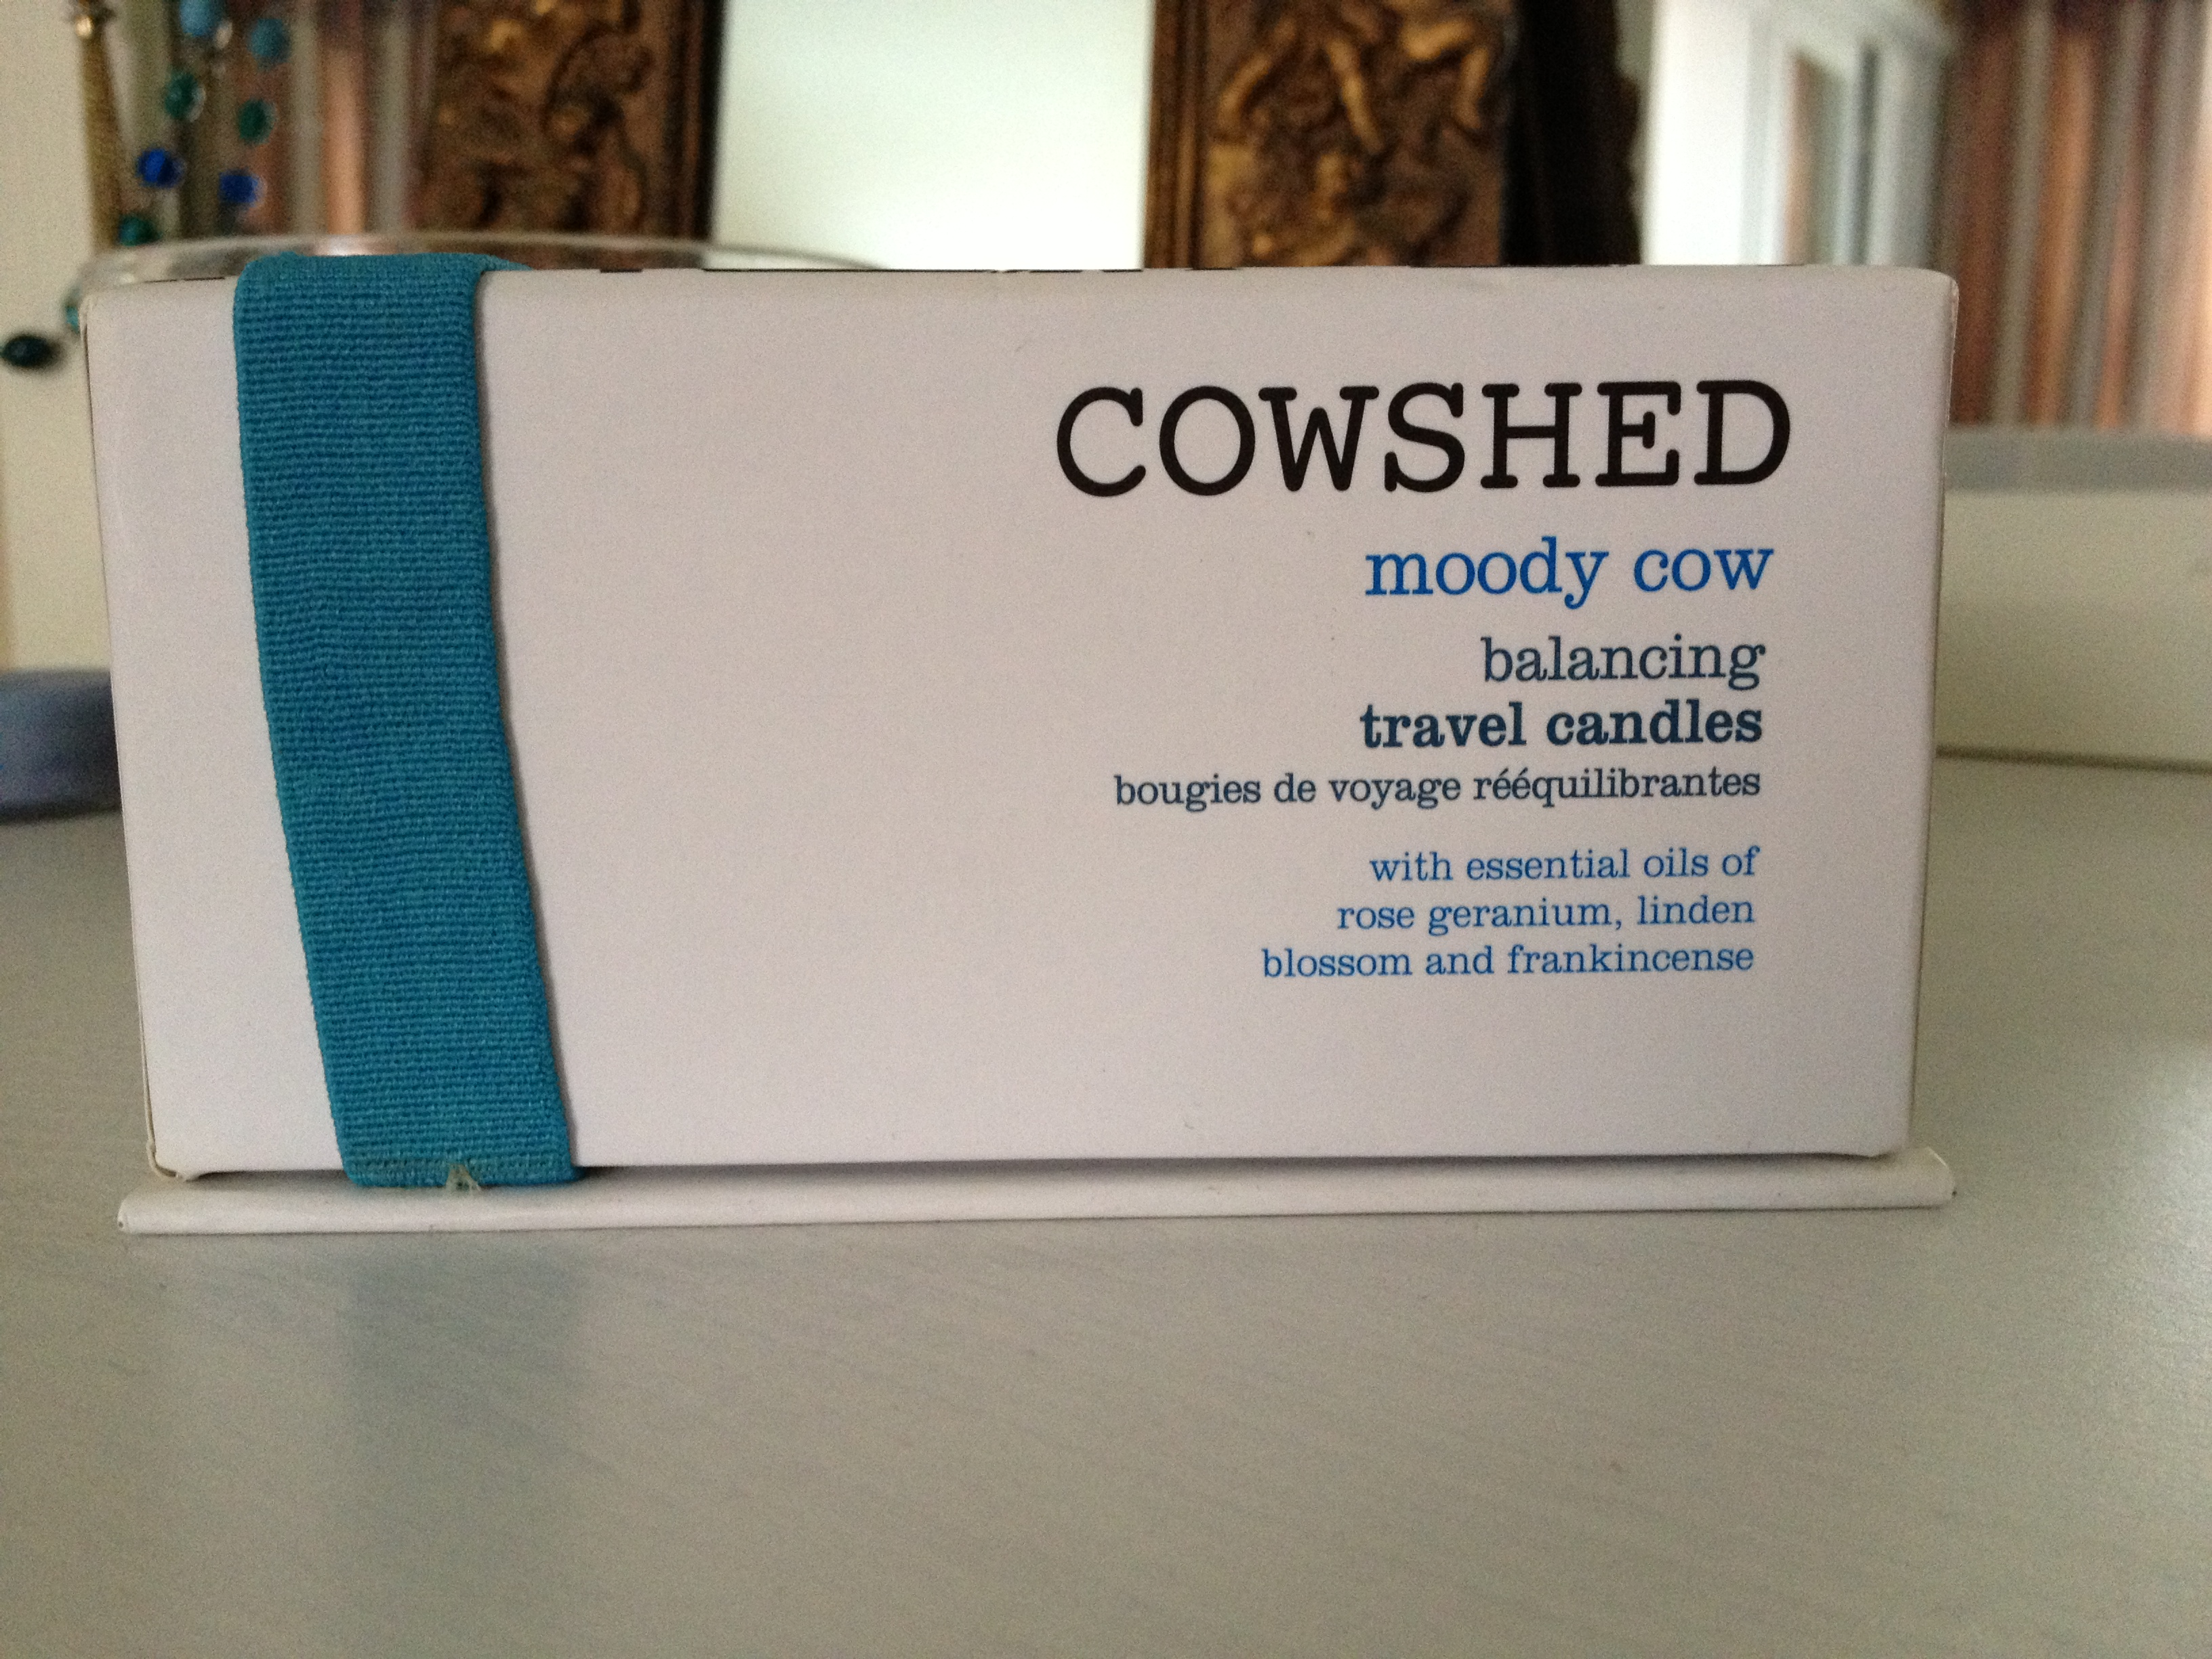 Cowshed_Moody_Cow_Balancing_Travel_Candles (3)